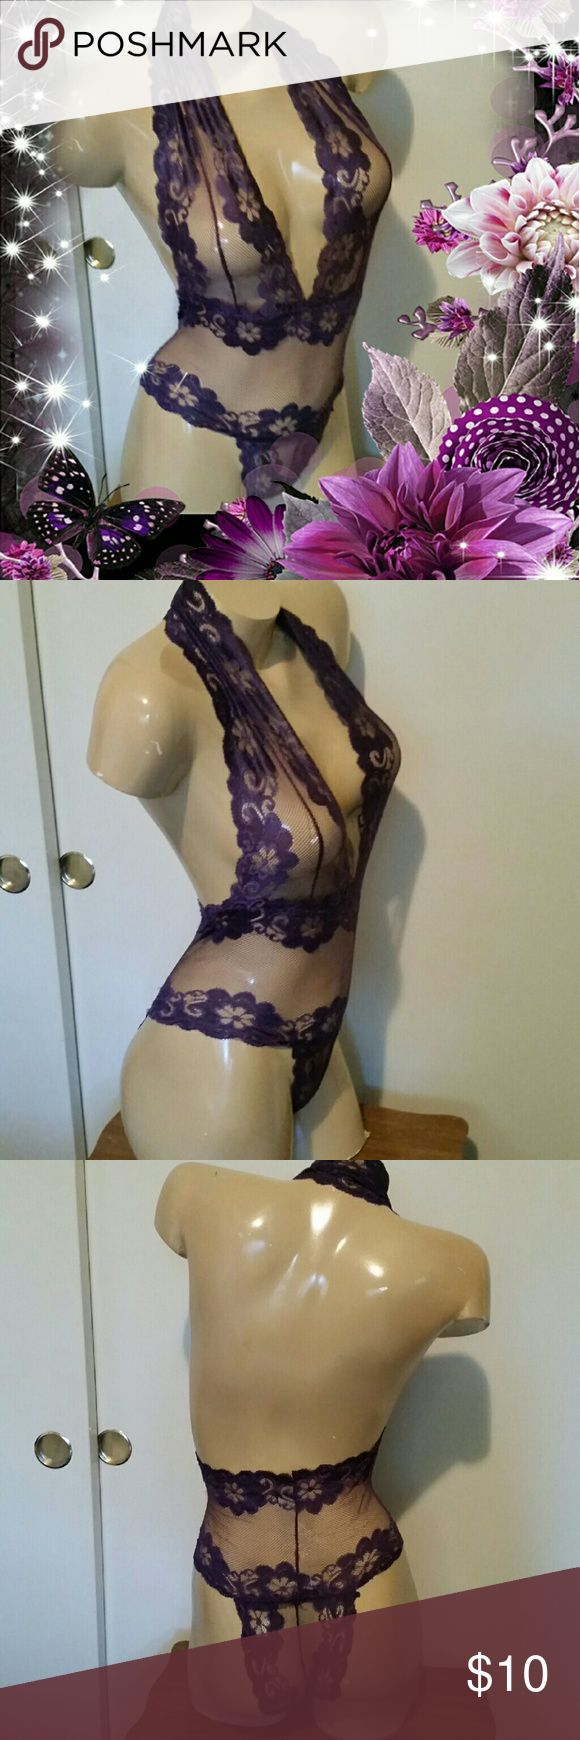 Purple lace lingerie Teddy This purple lace lingerie Teddy is absolutely gorgeous! slip-on, fits small through medium, show off your curves and look gorgeous while doing it, NEW. tags removed Intimates & Sleepwear Chemises & Slips